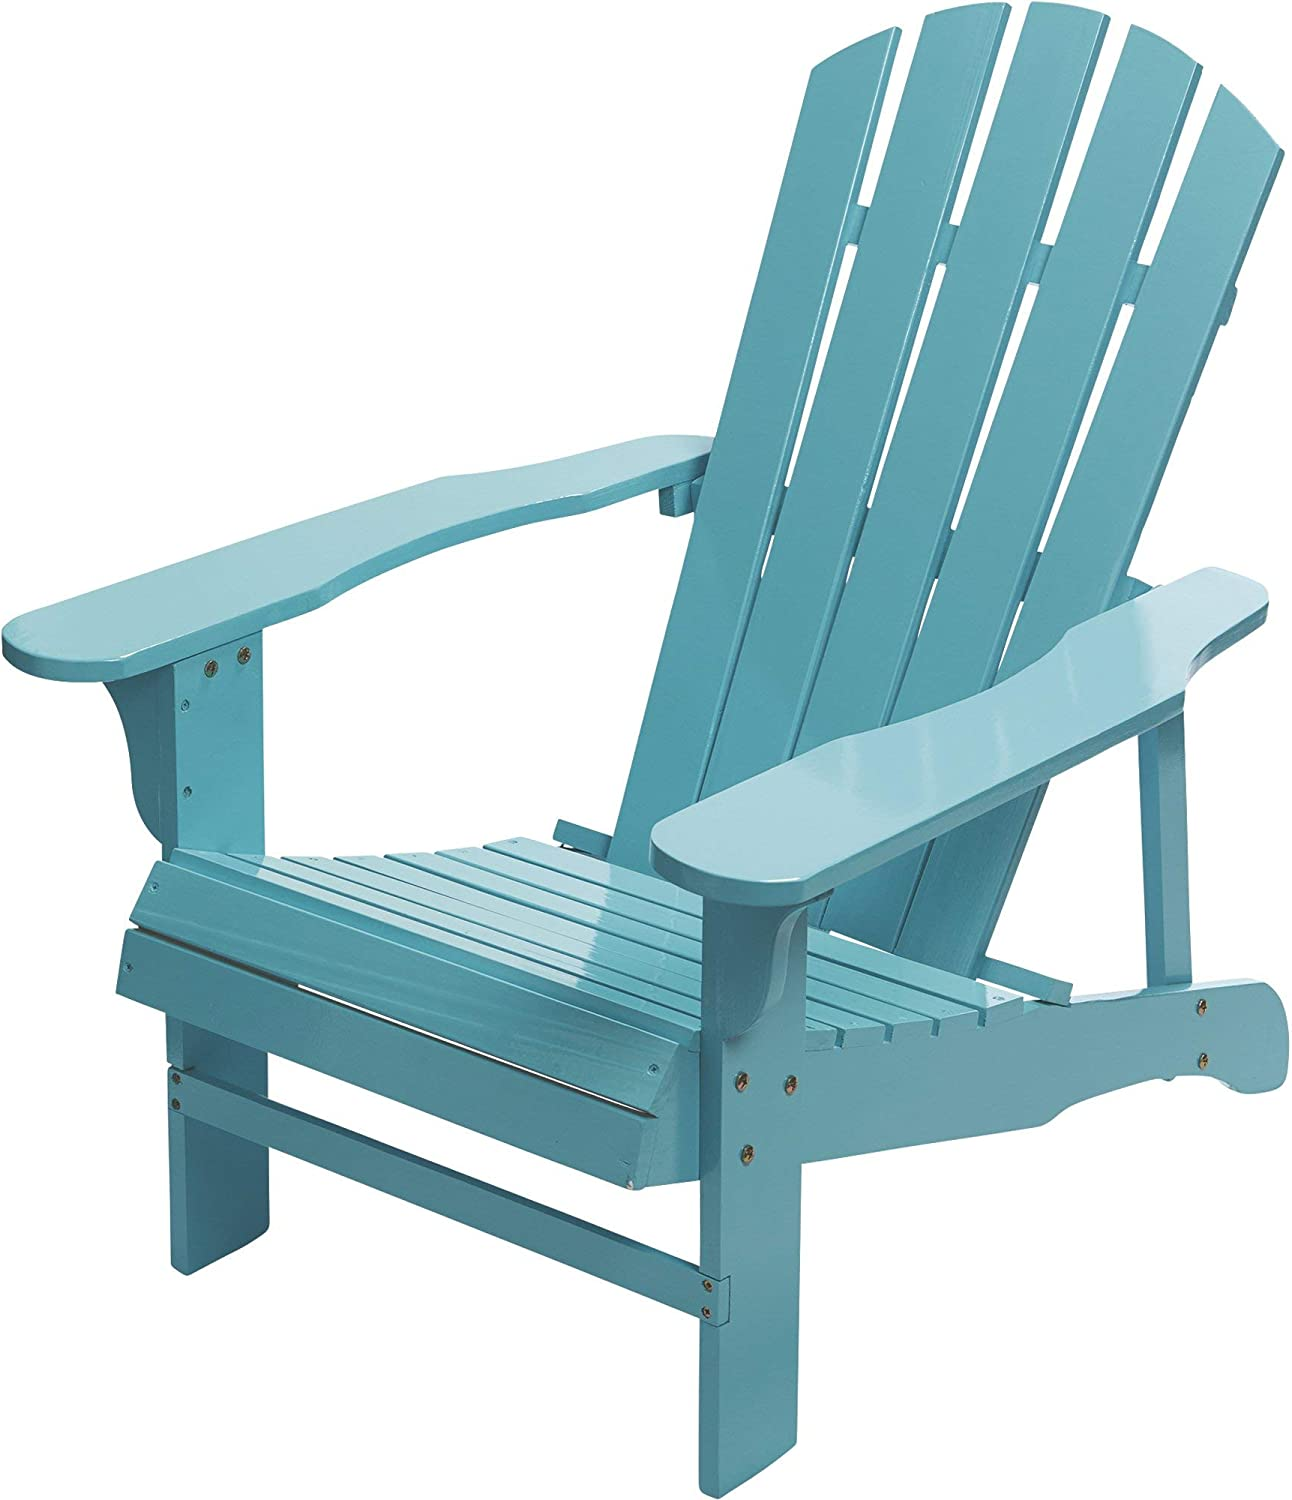 Leigh Country Classic Painted Acacia Wood Adirondack Chair - Turquoise